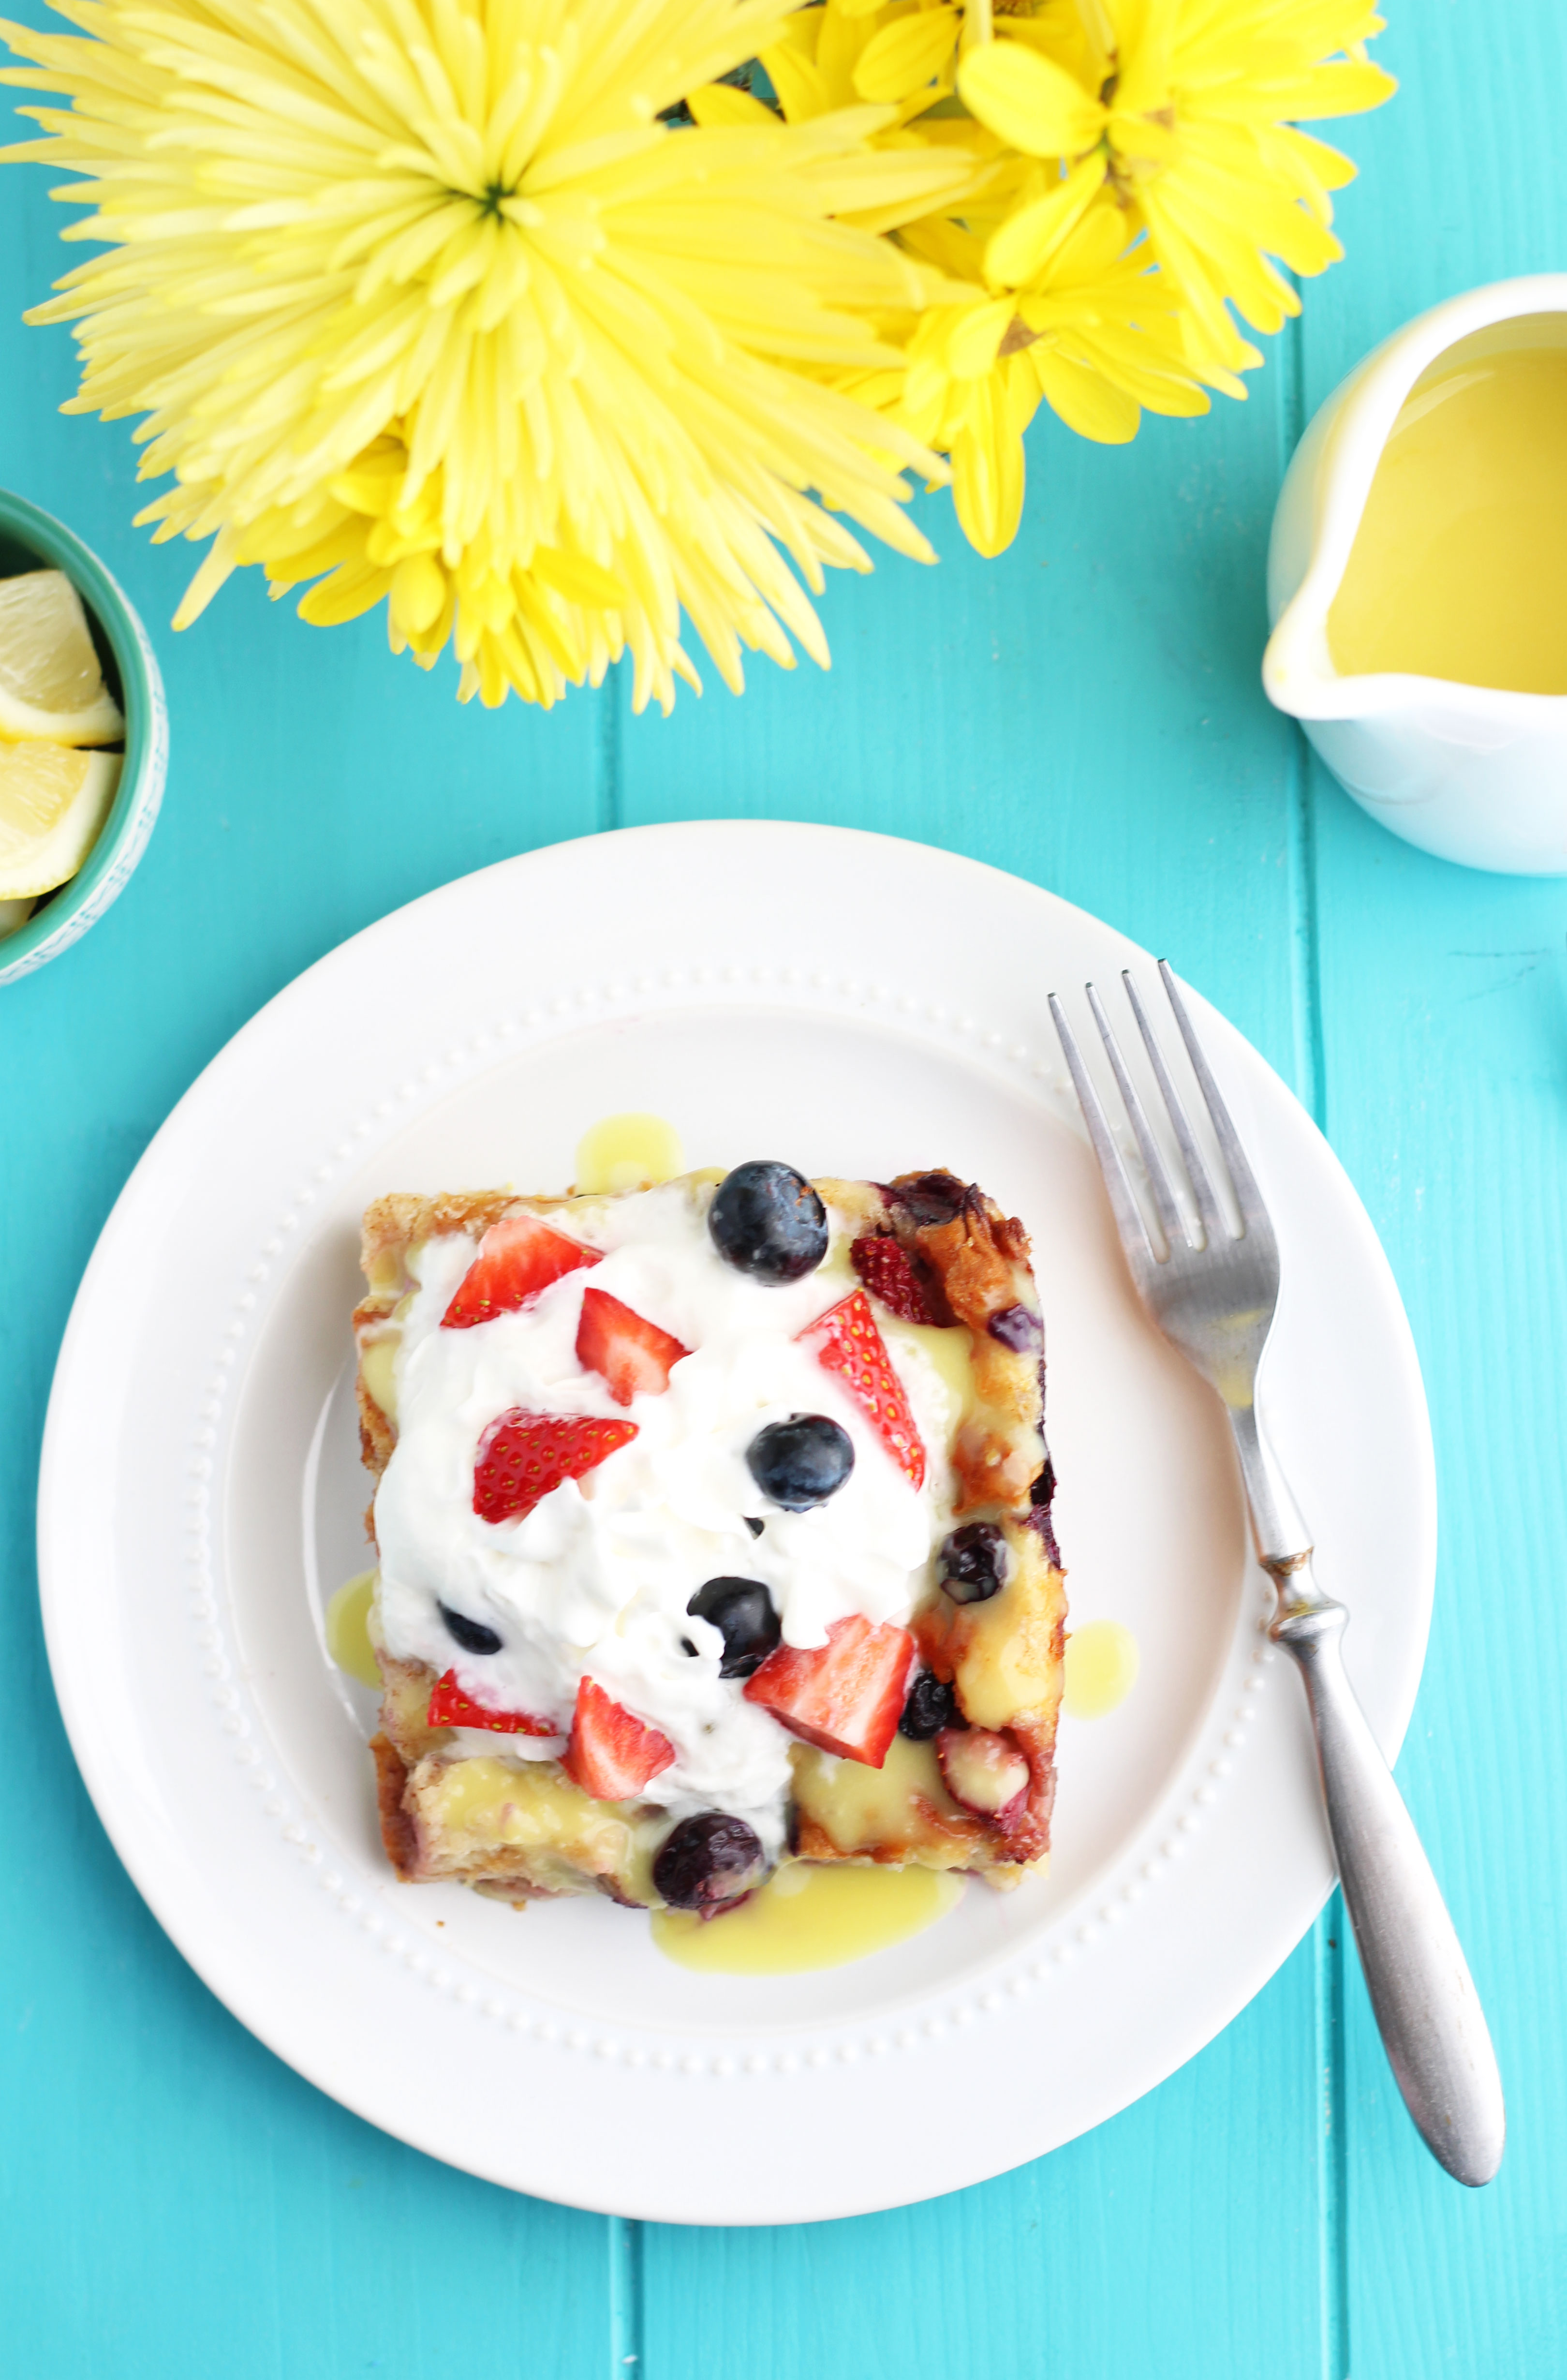 HawaiianSweet-Roll-and-Berry-Bread-Pudding-with-Lemon-Sauce-